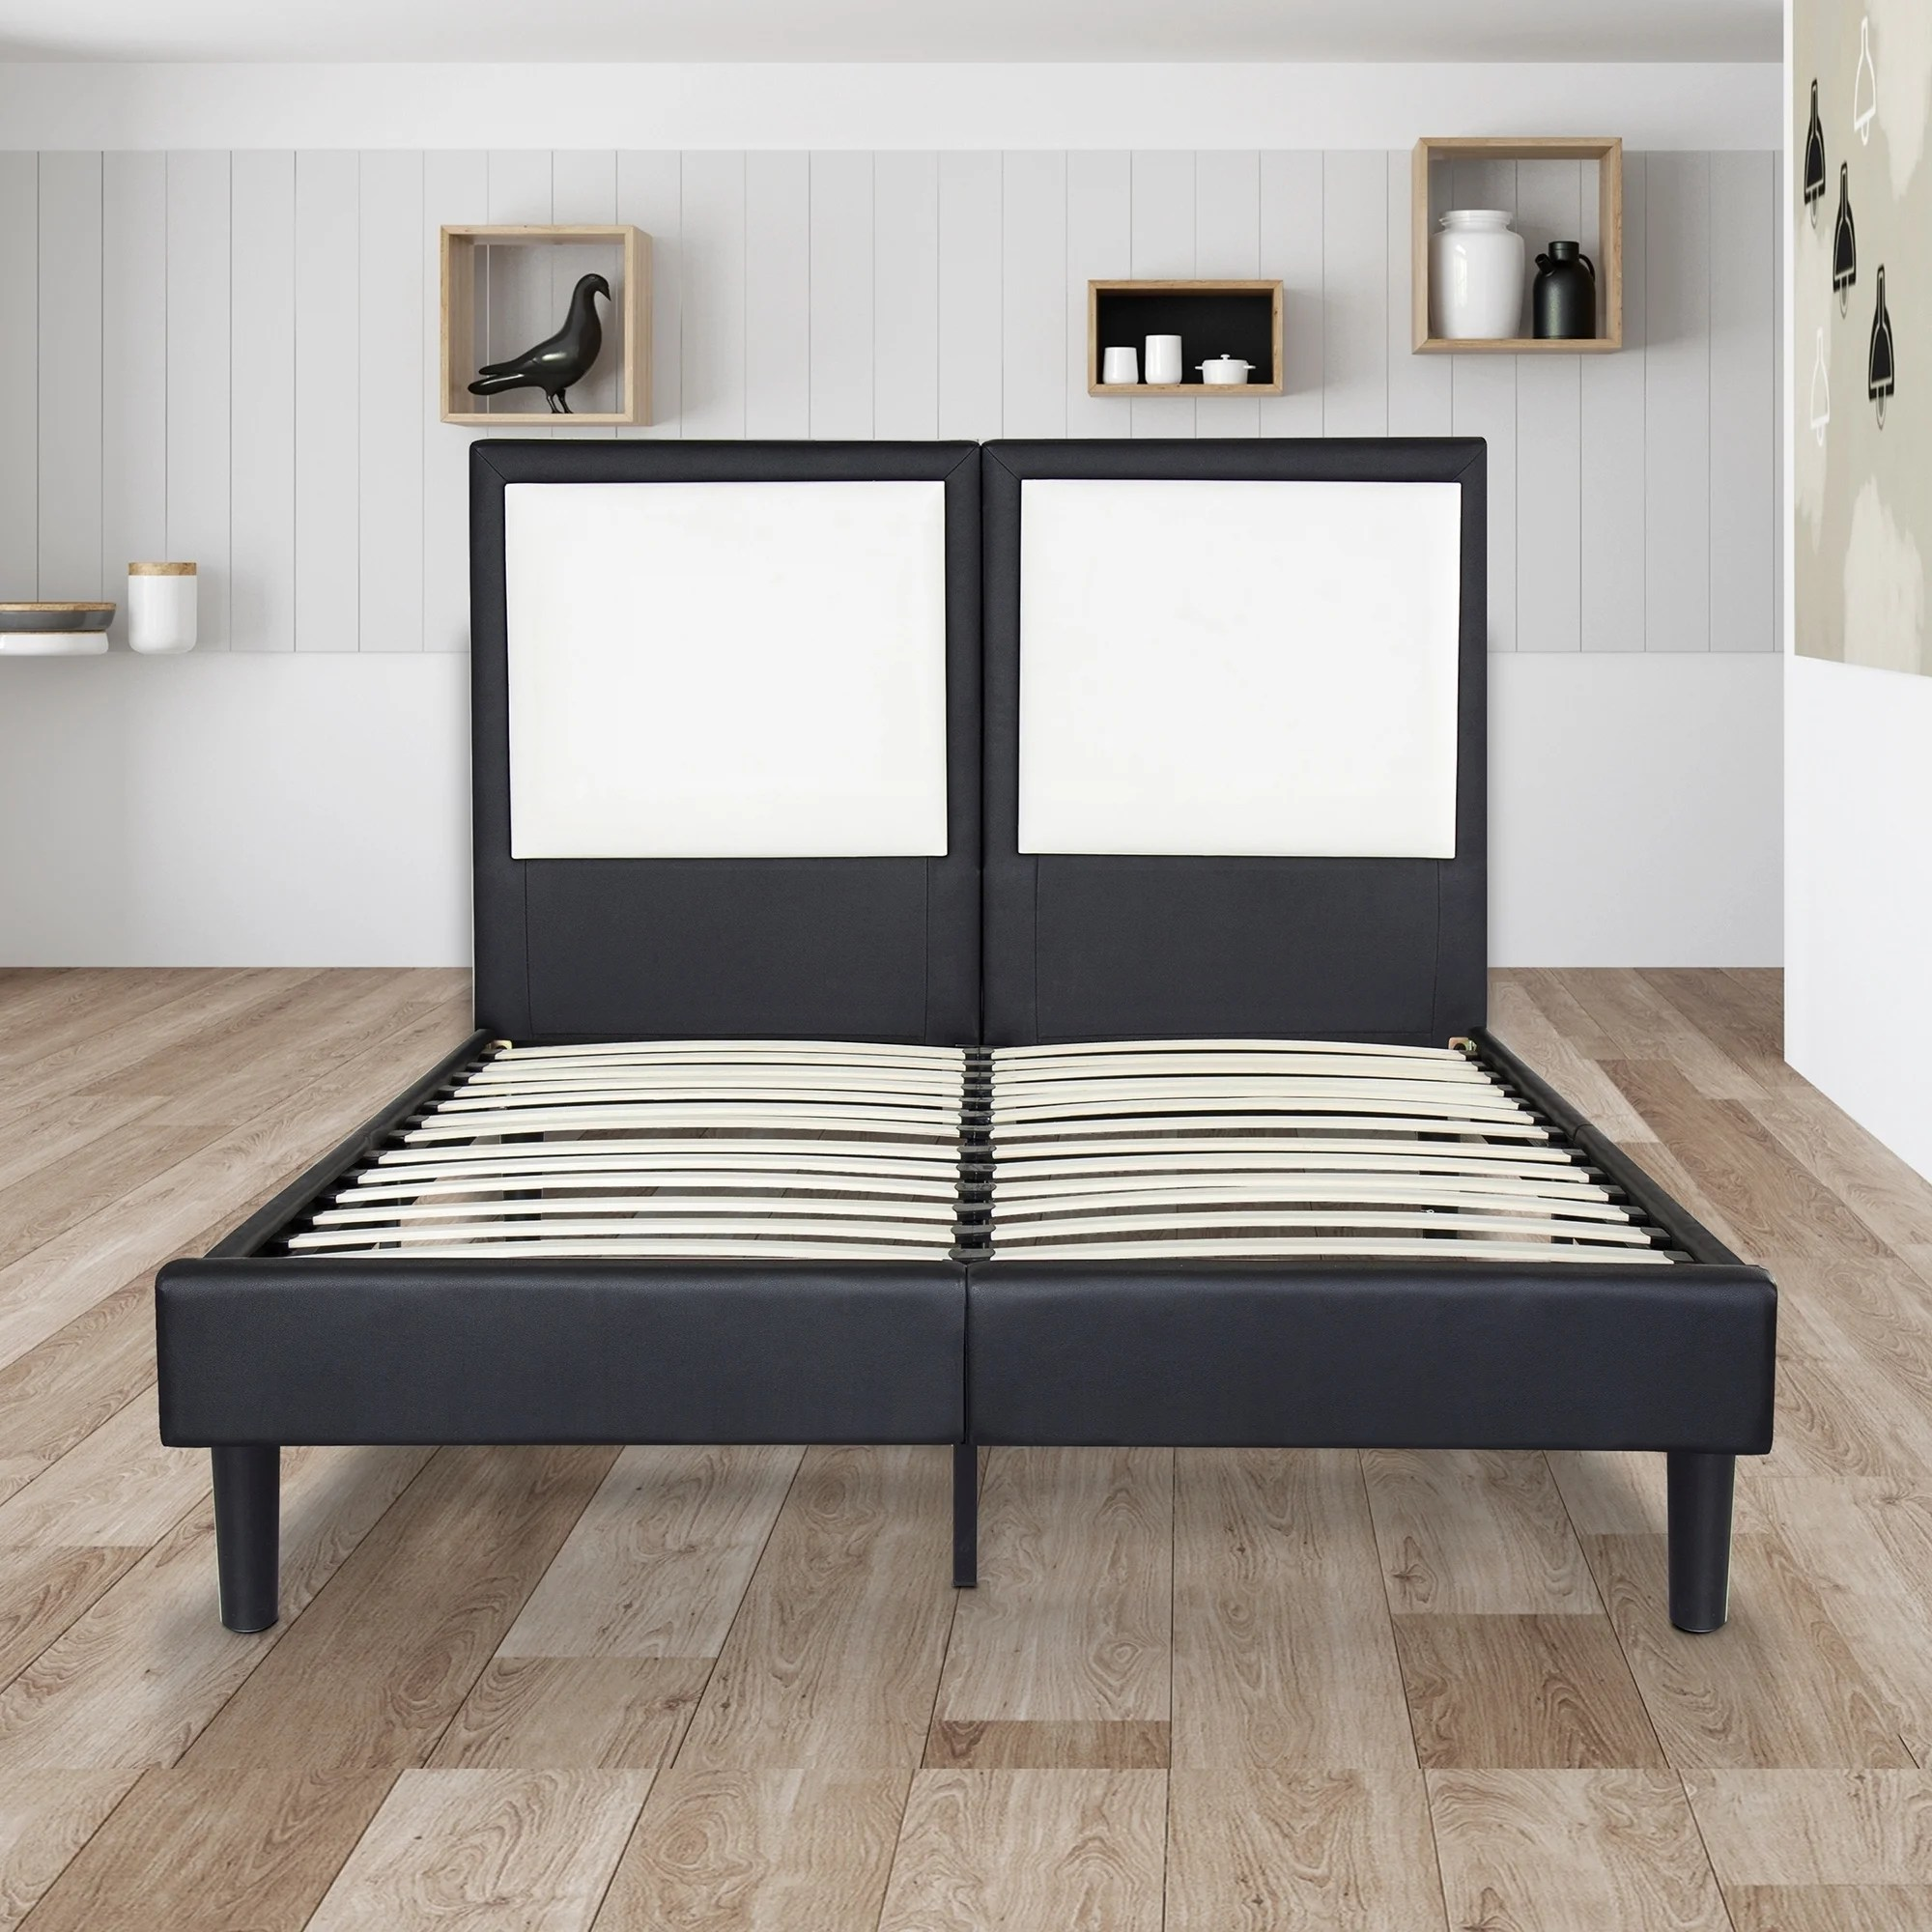 Dura Beds Mattress Sleeplanner 14 Inch King Size Dura Metal Bed Frame With White Square Faux Leather Headboard